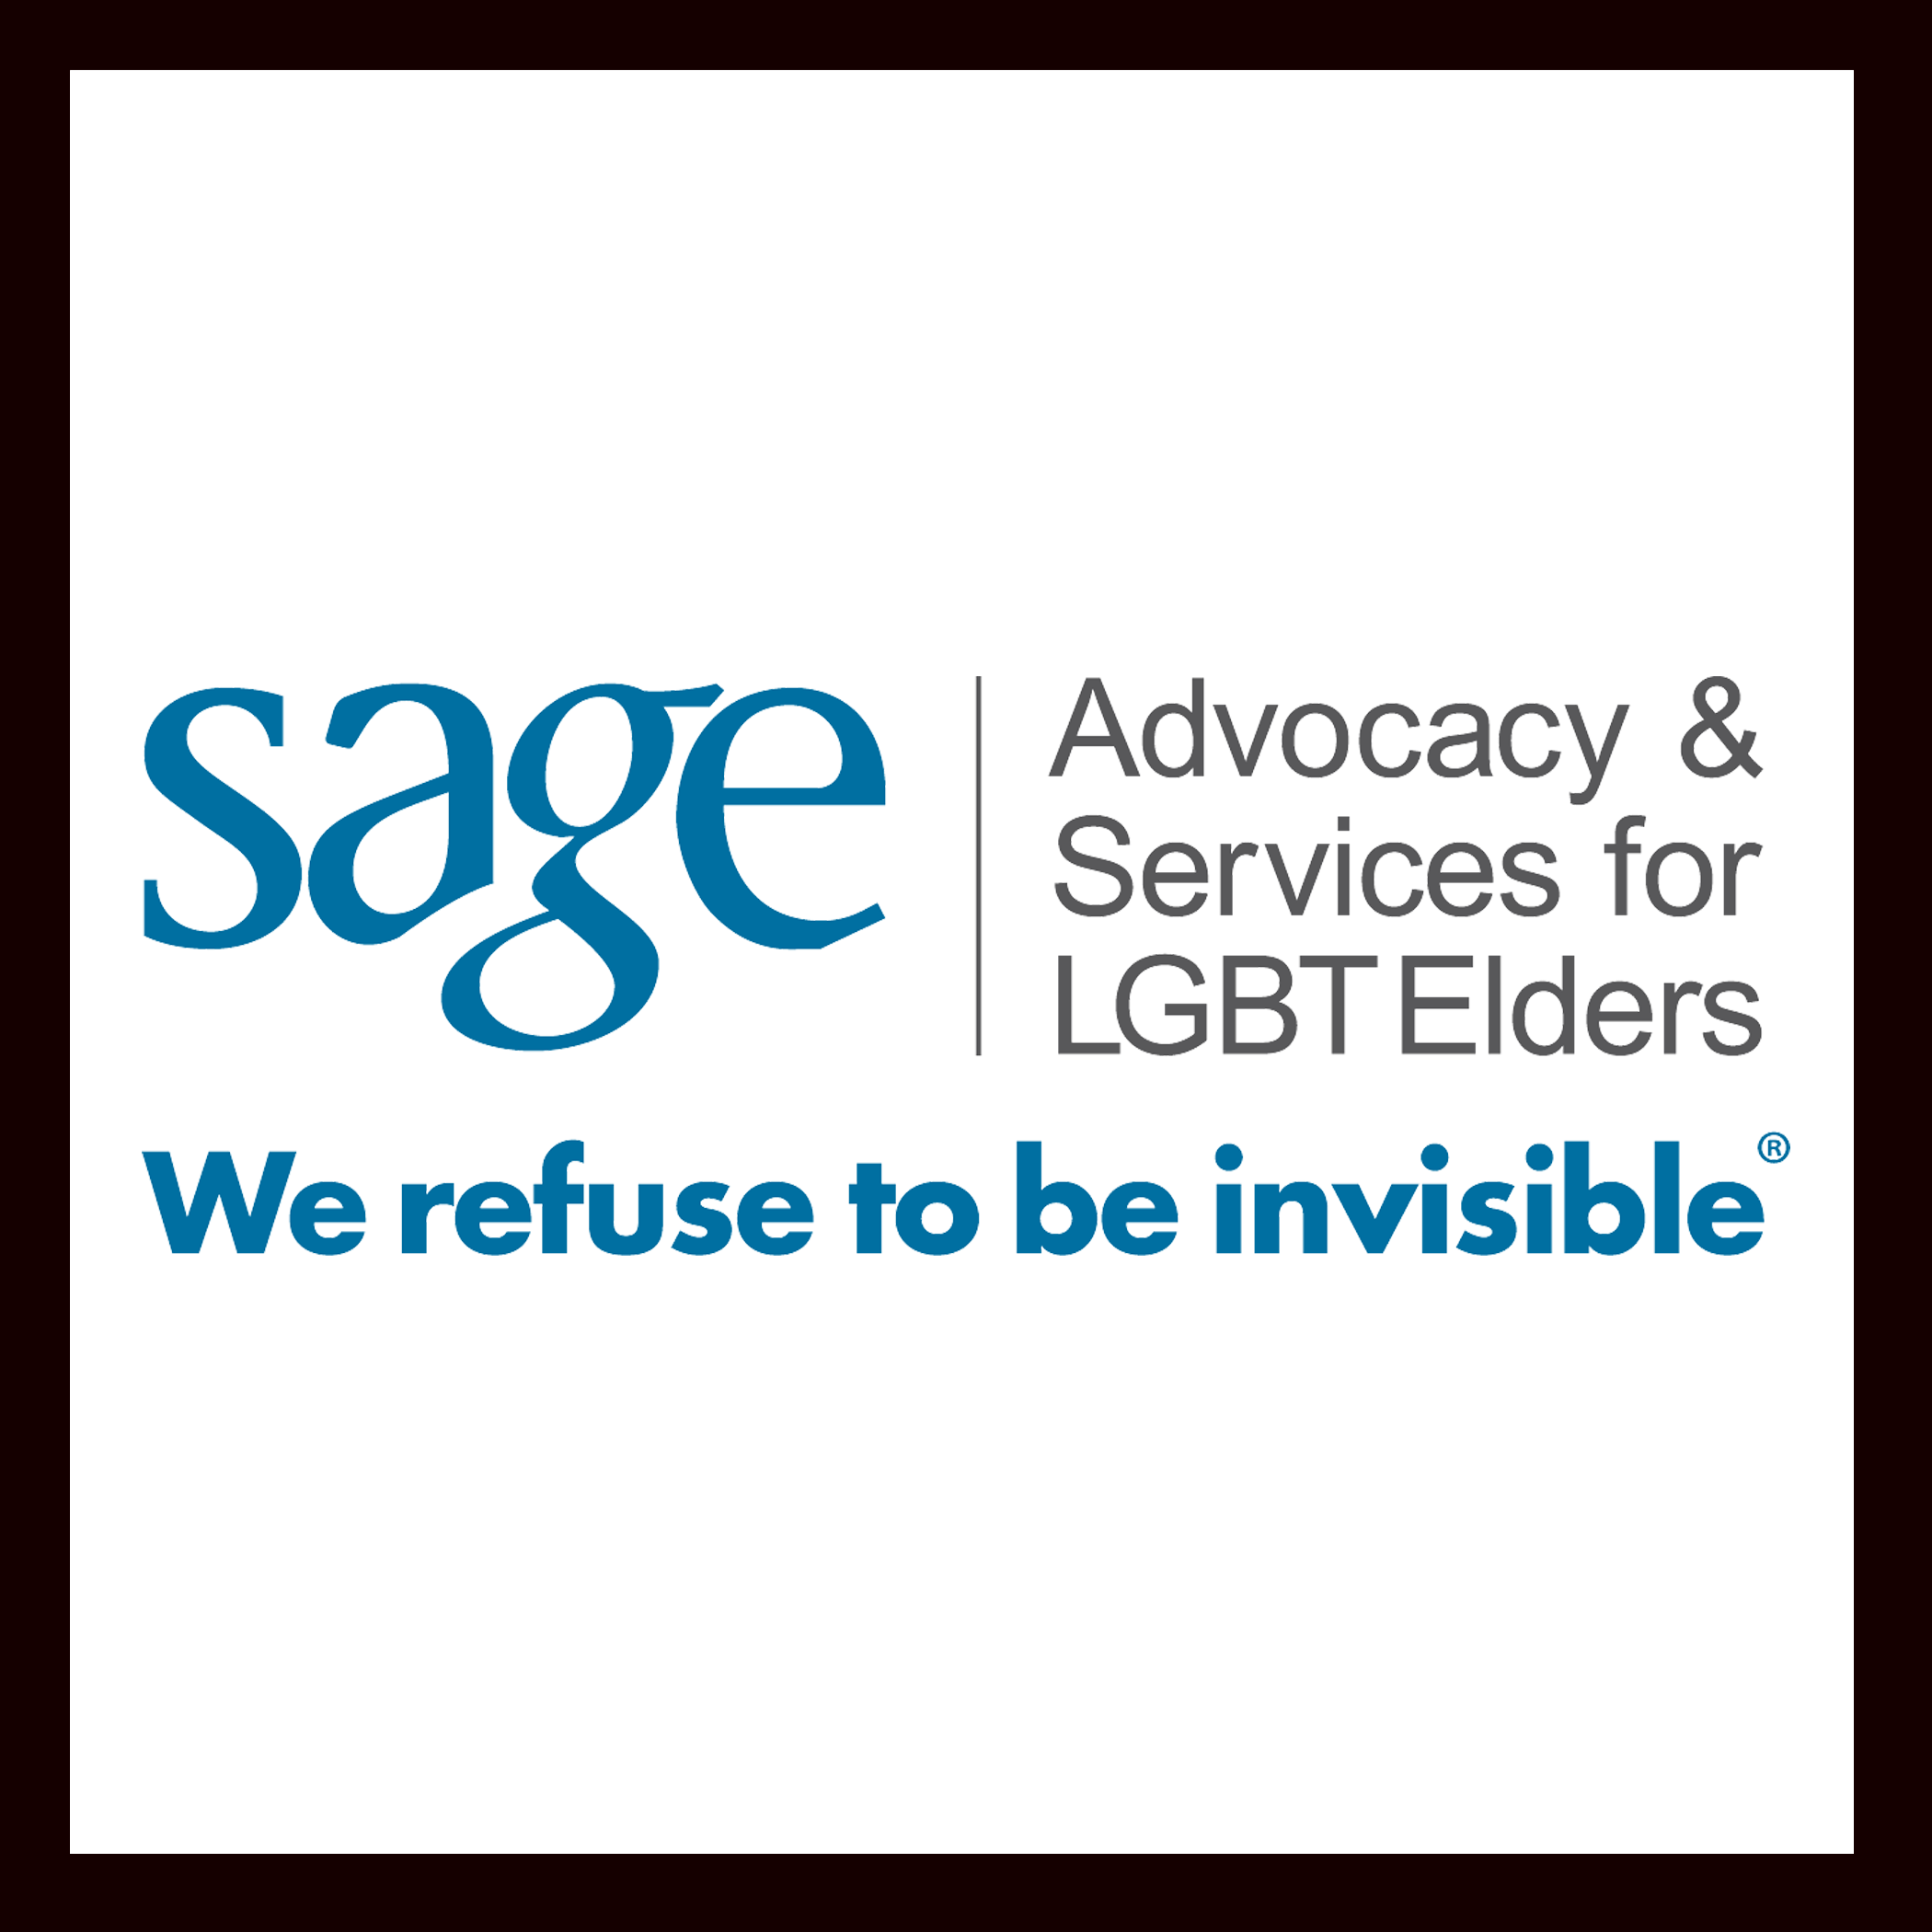 Sage- Advocacy & Services for LGBT Elders